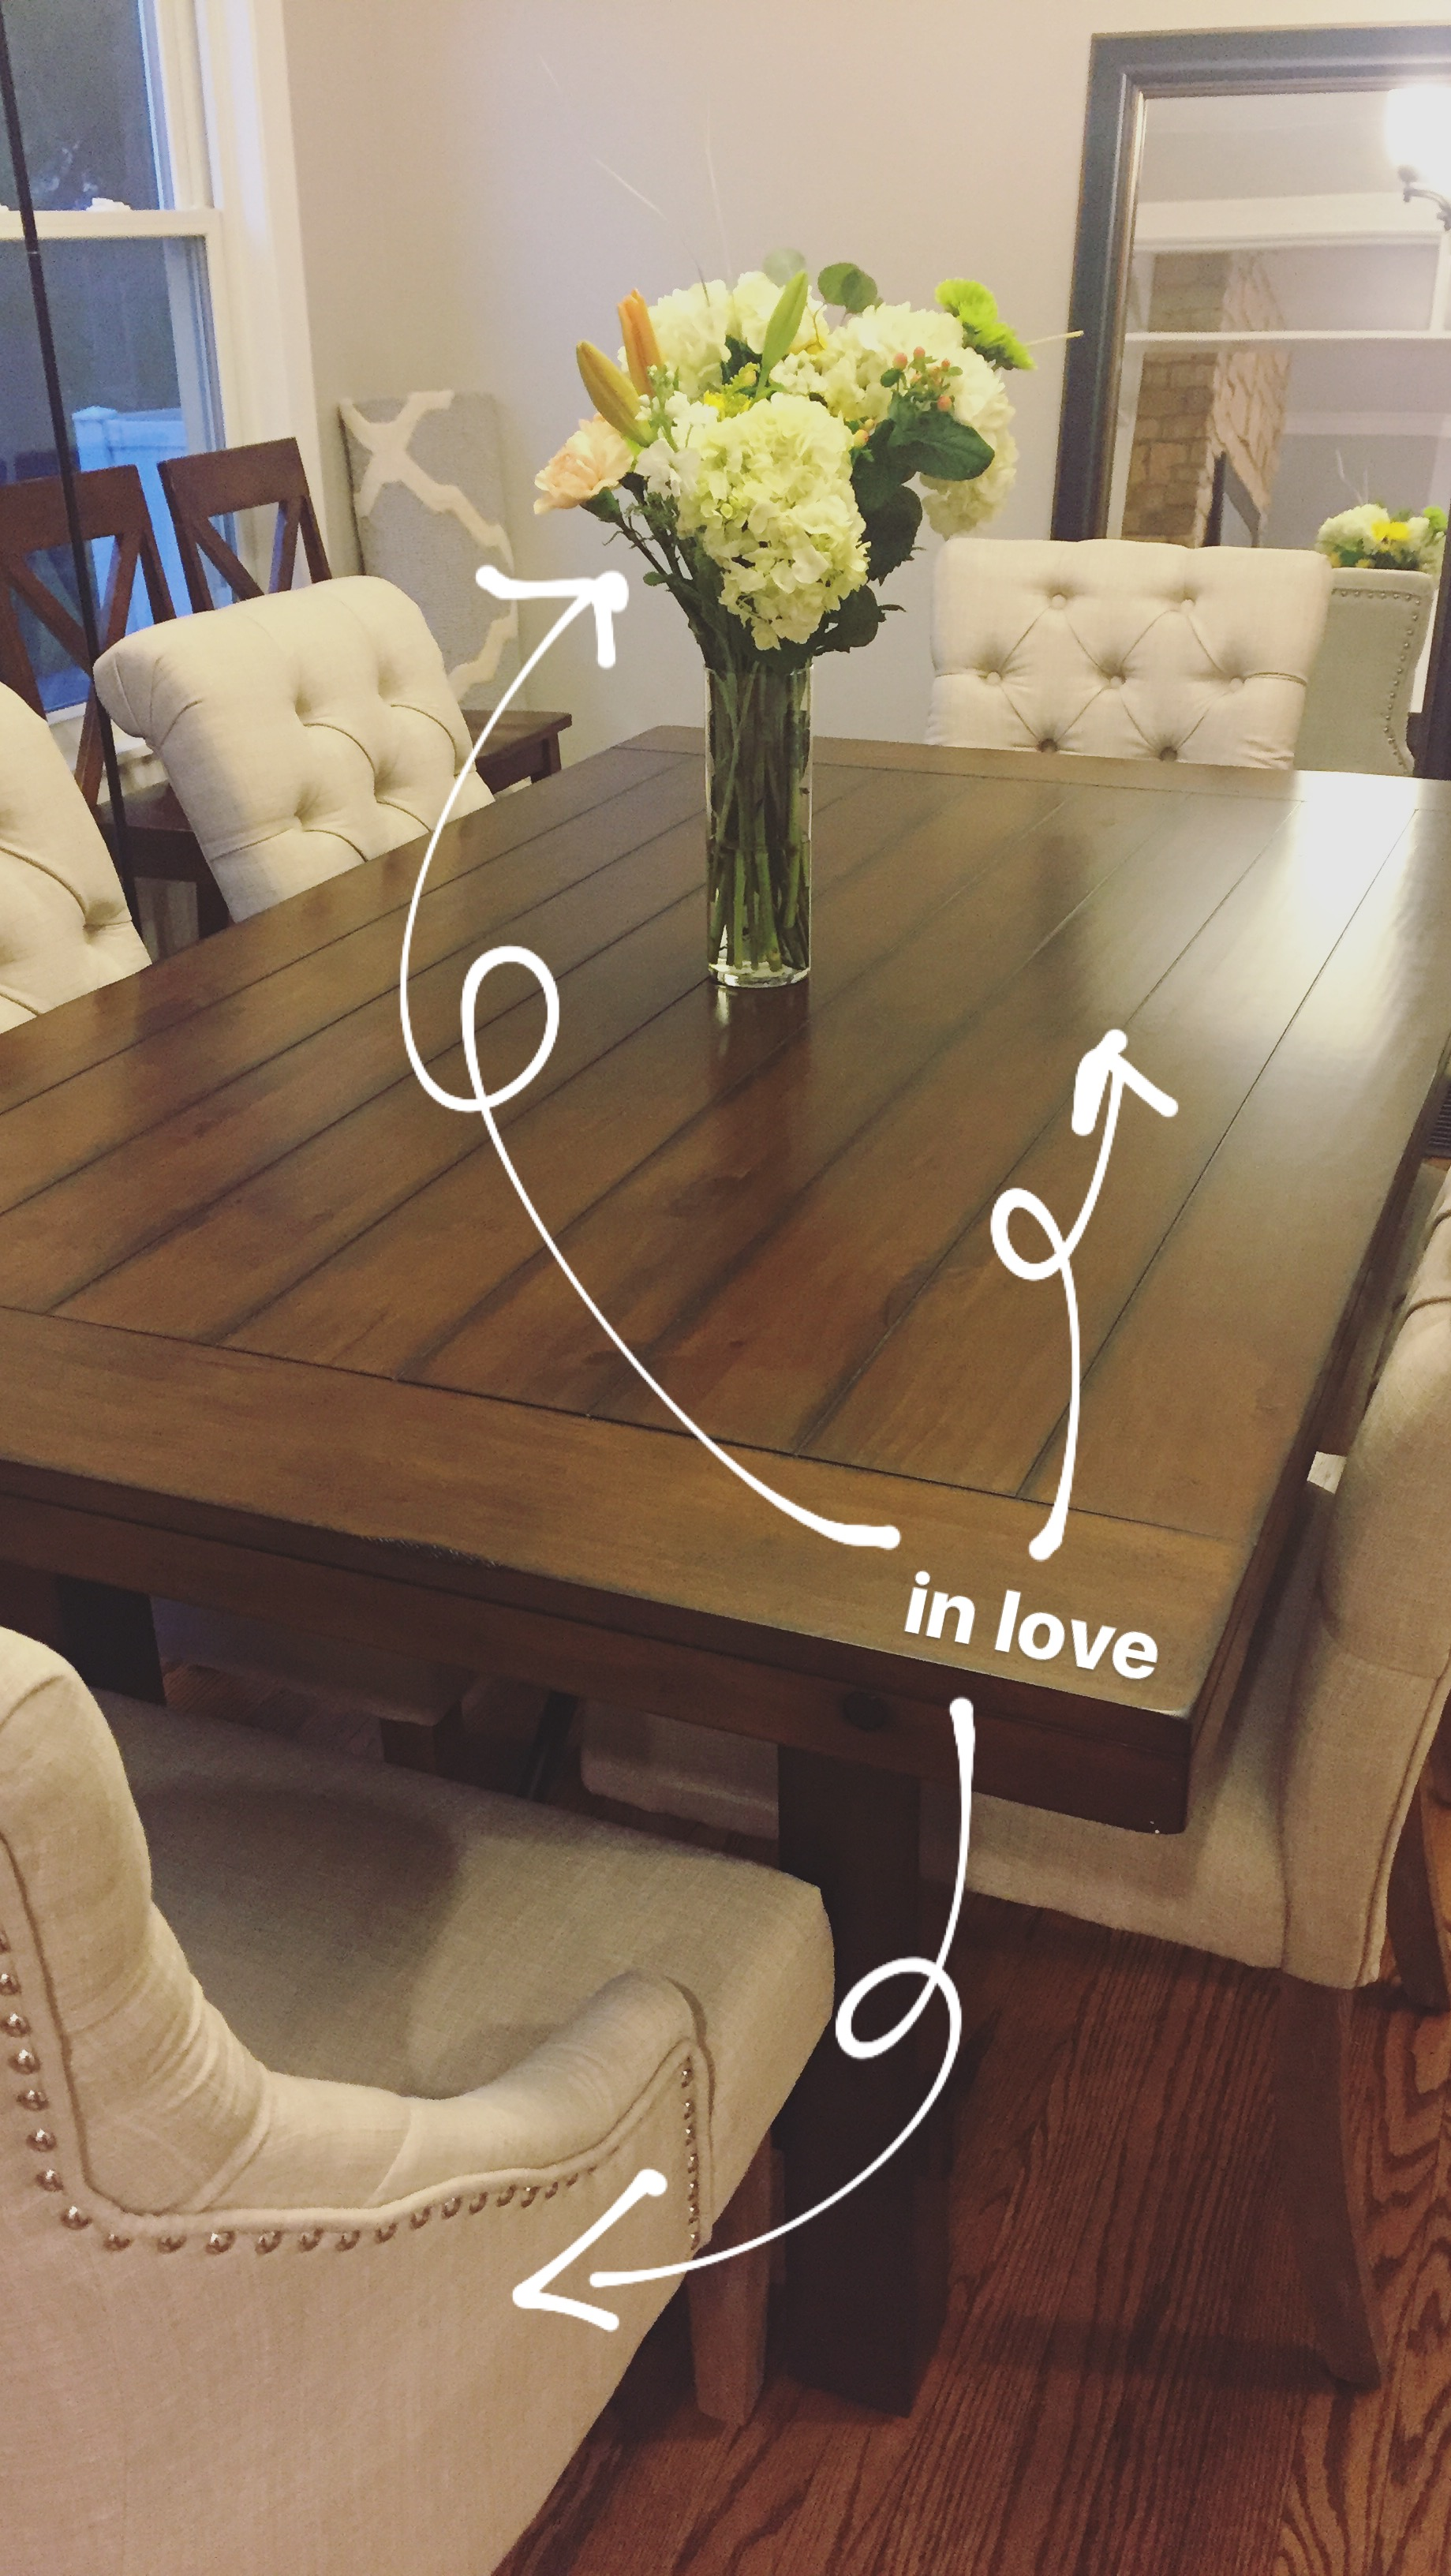 The Dining Table and Chairs!